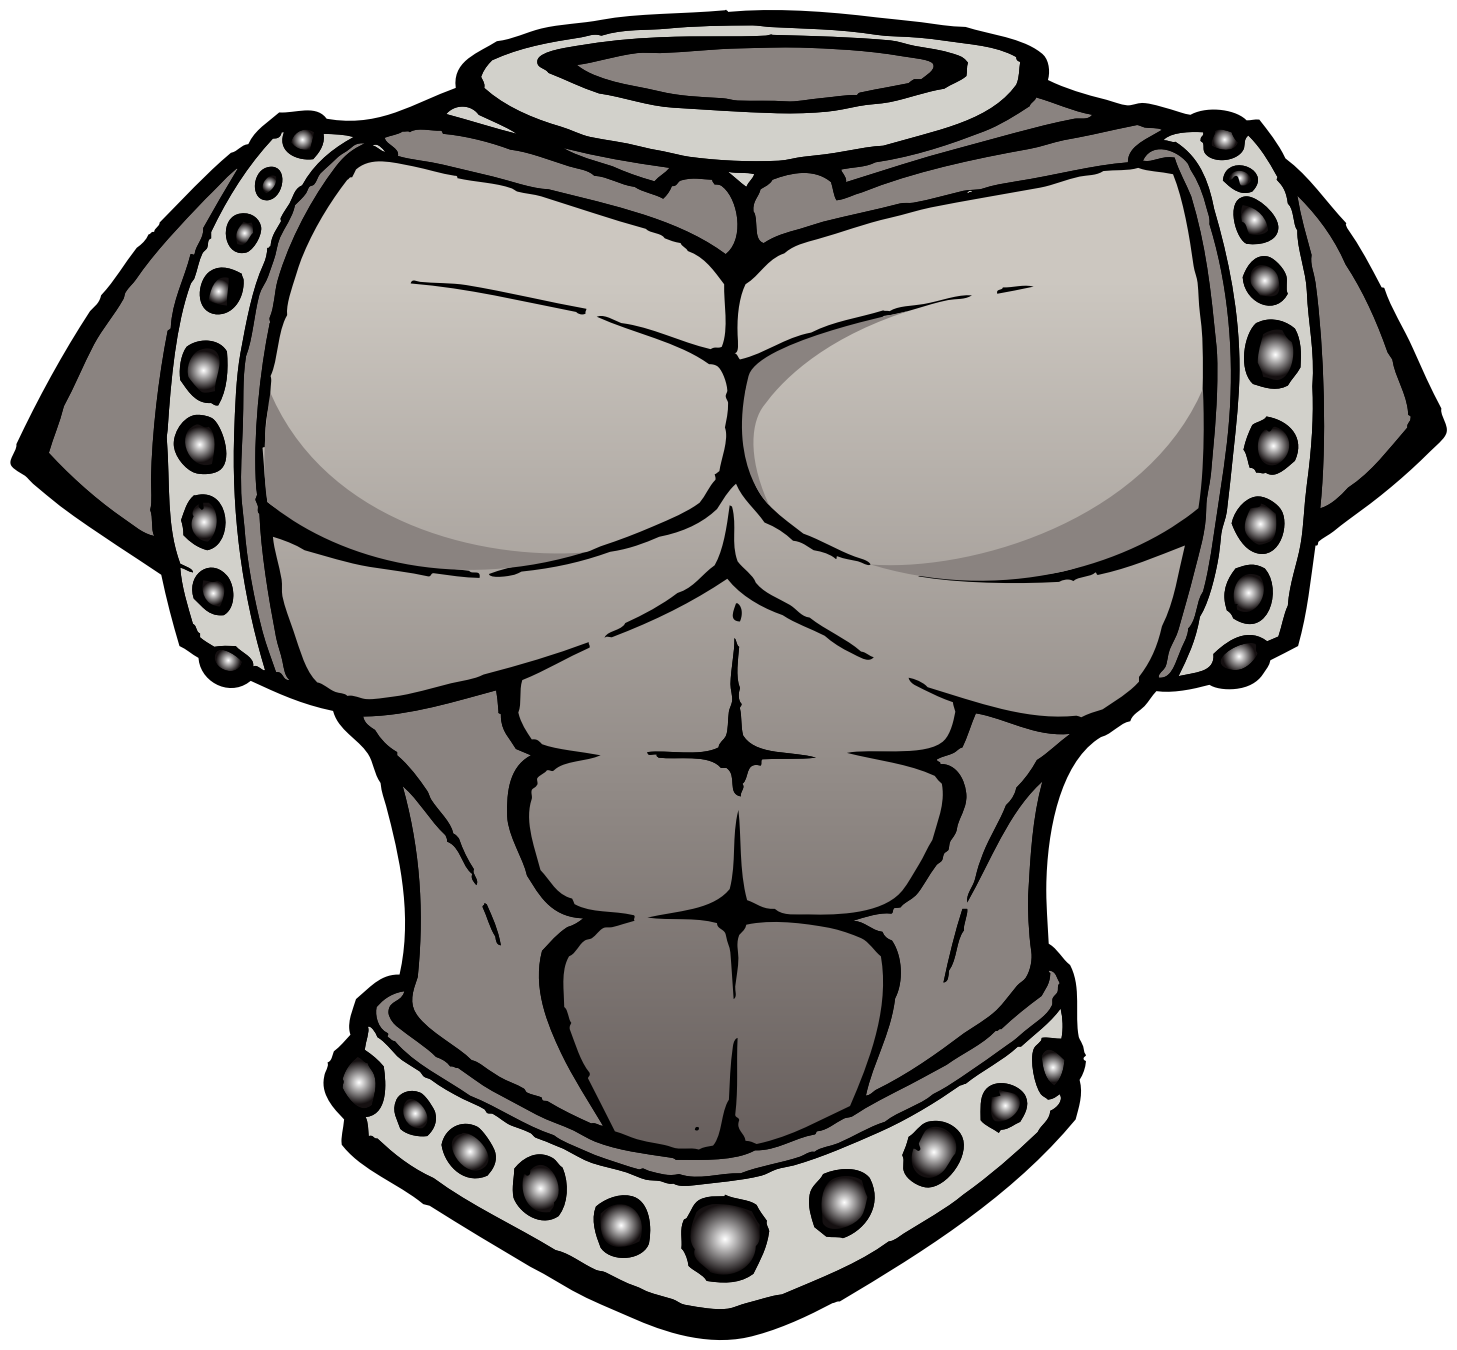 Armor clipart #2, Download drawings